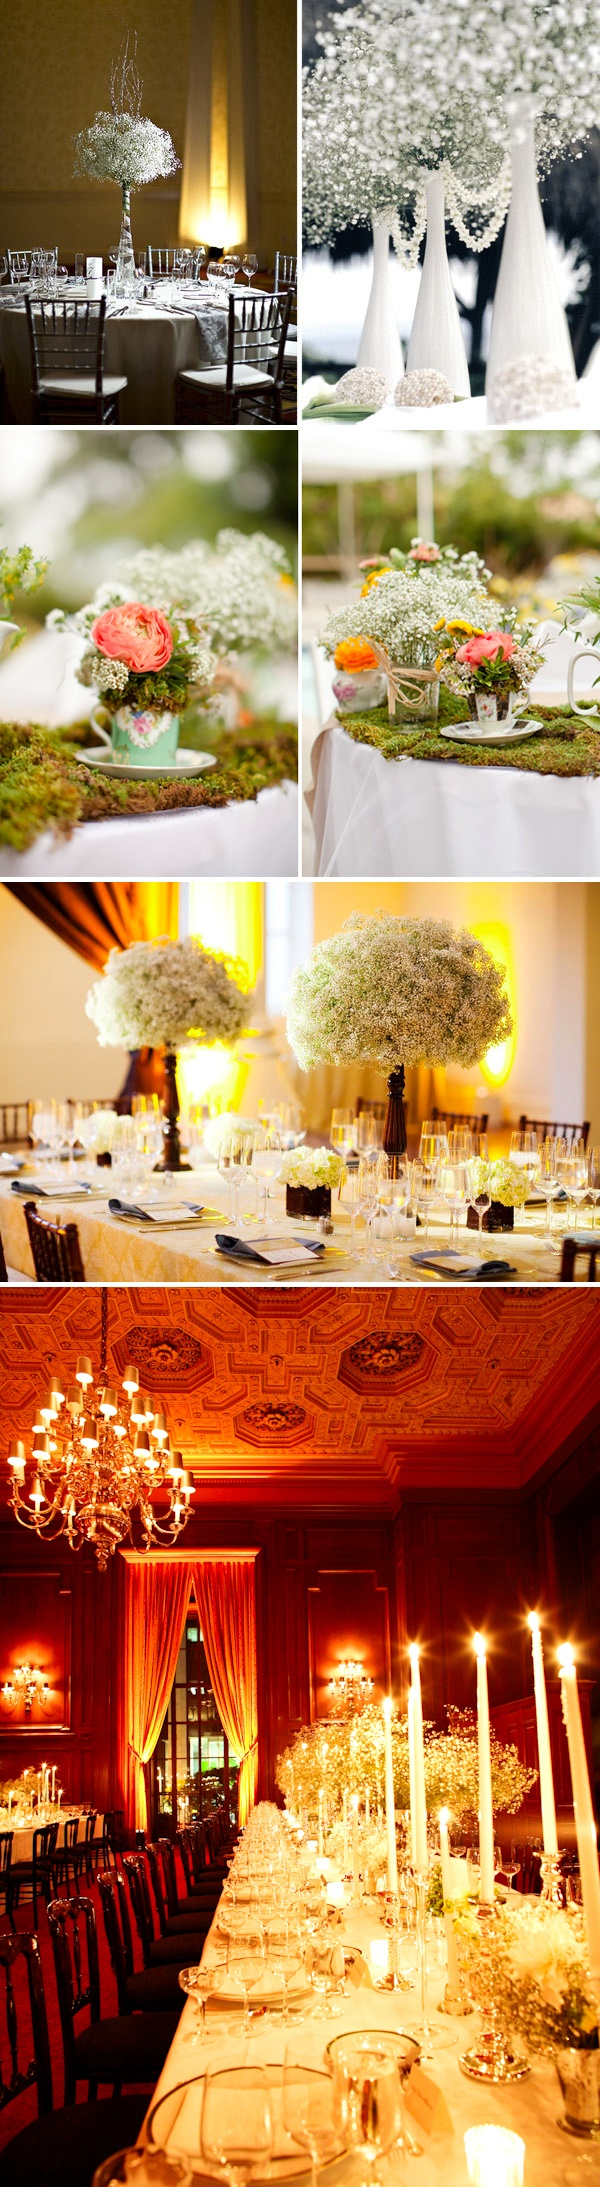 Upper right corner would be awesome for winter wedding - Baby's Breath Wedding Flowers